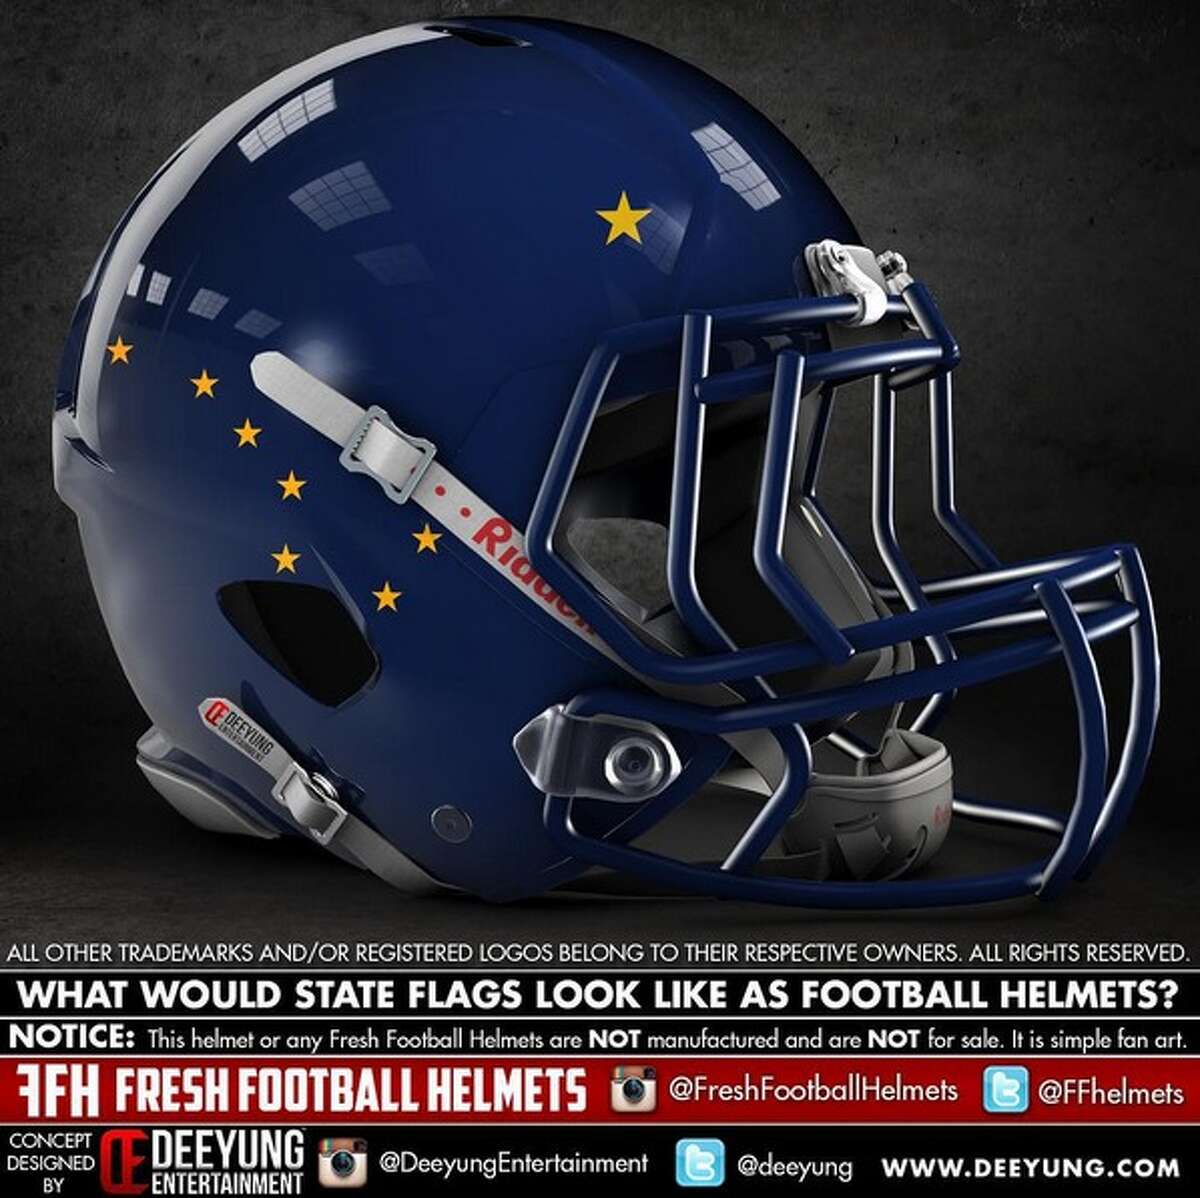 Alaska state flag concept football helmet designed by graphic artist Dylan Young of Deeyung Entertainment.